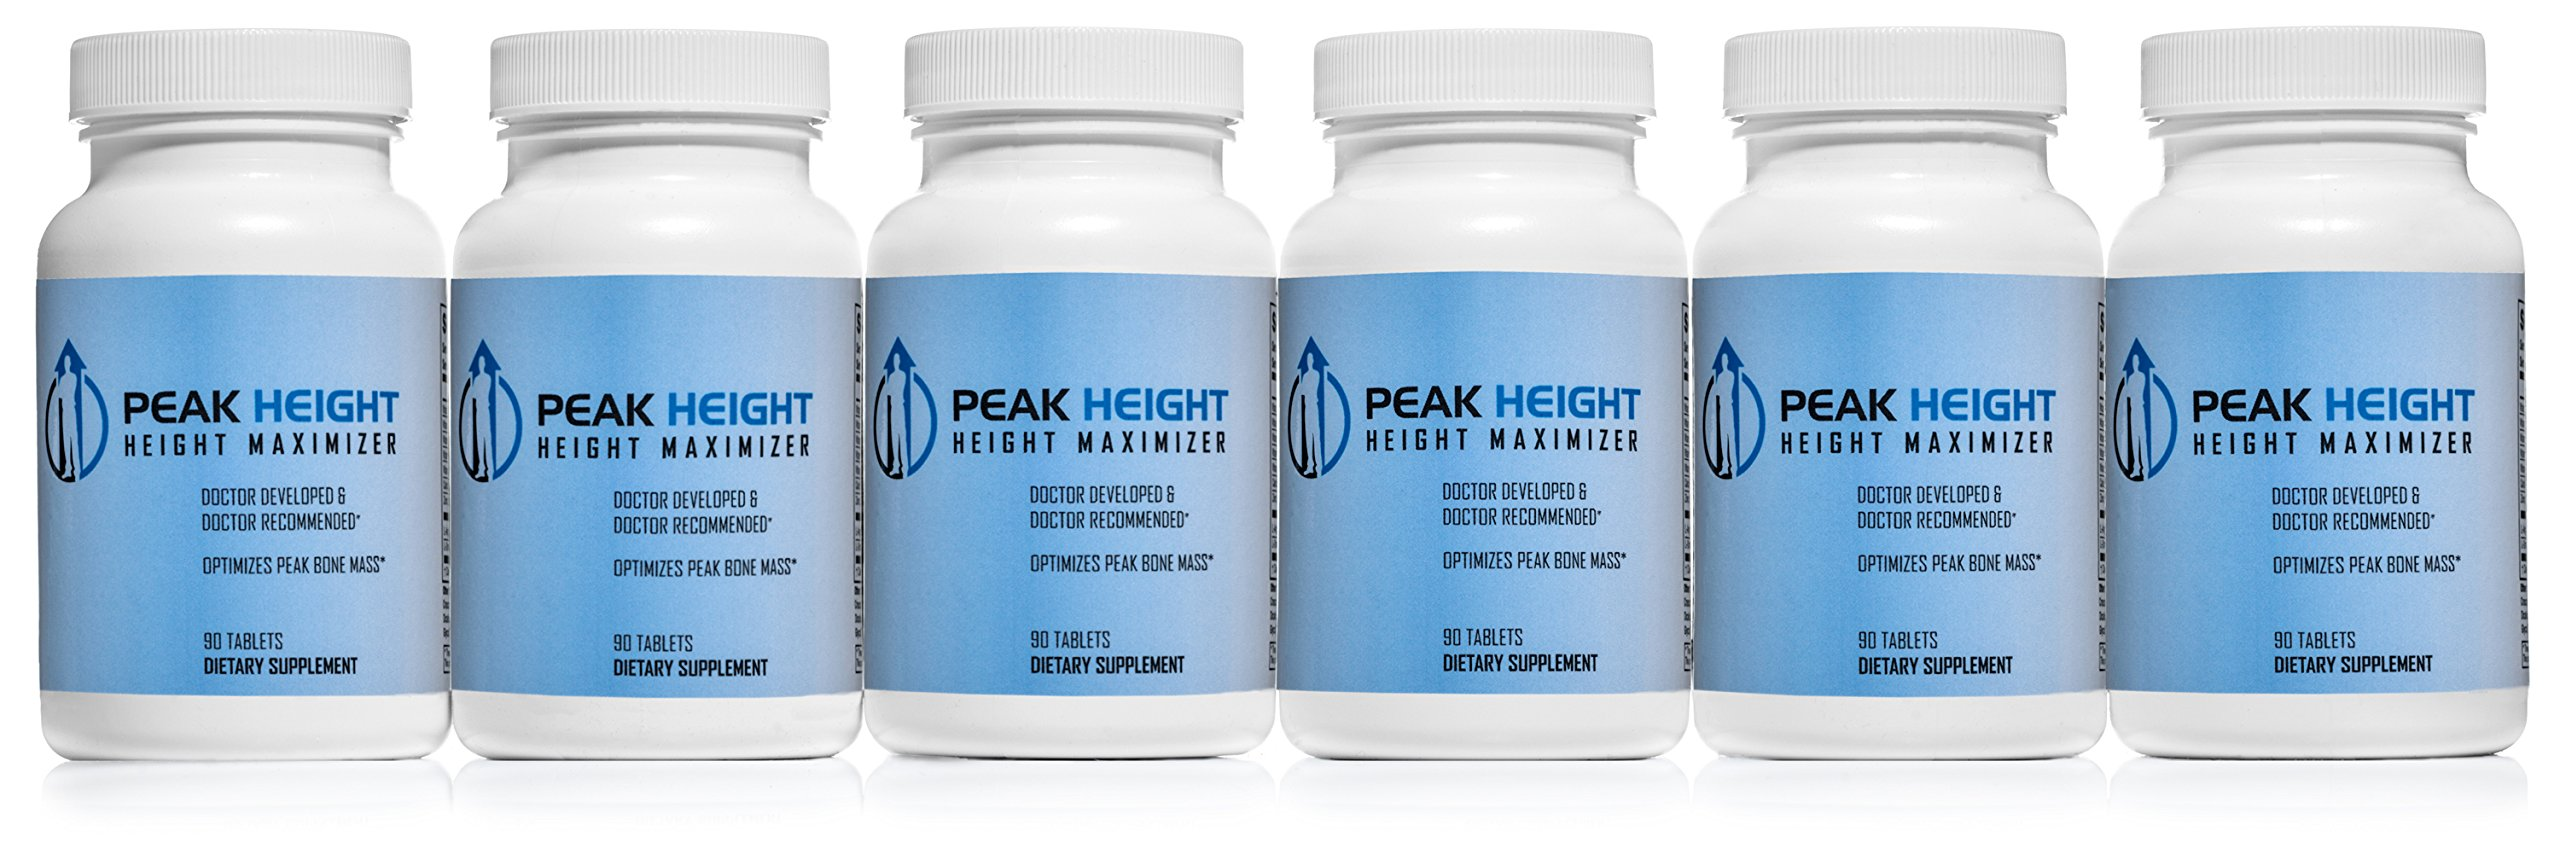 1 Grow Taller Height Pill Supplement-Peak Height 6 Month Supply-Height Supplement-Doctor Recommended, 90 tablets( pack of 6) by Grow Taller Supplement